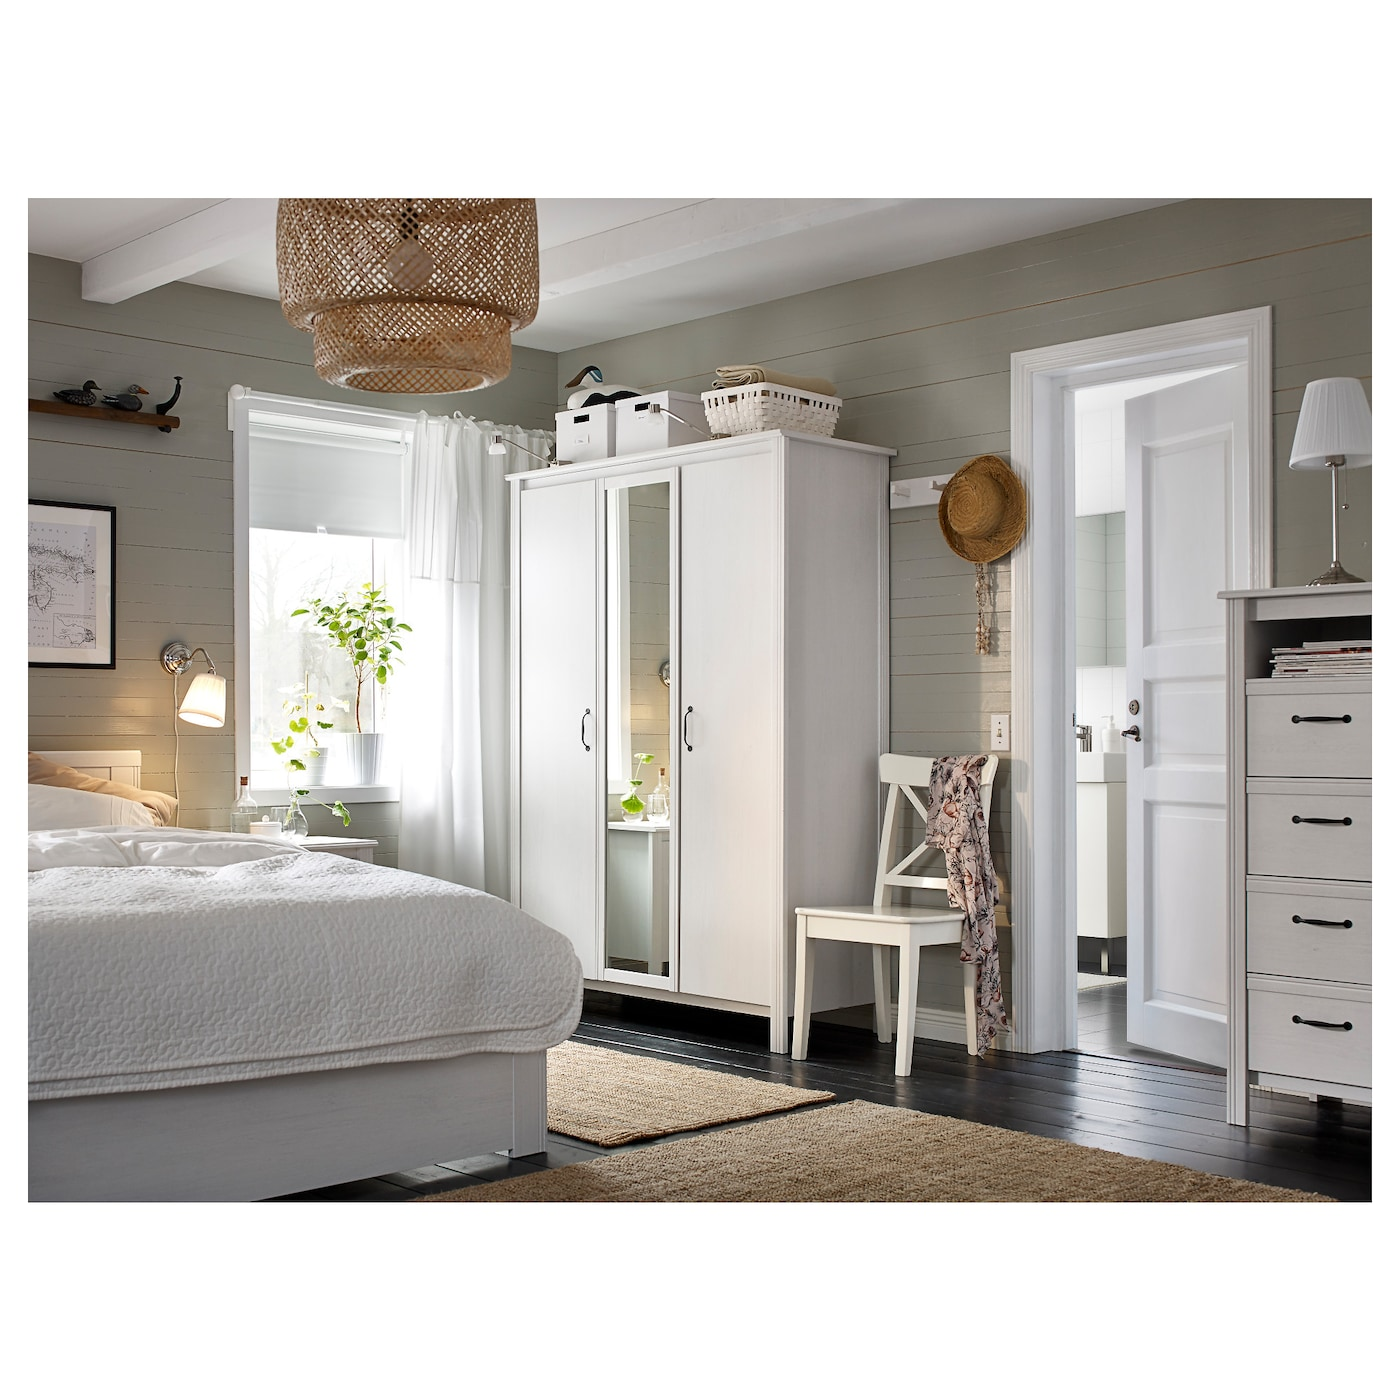 bedroom chair ikea bedroom. modren chair ikea ingolf chair solid wood is a hardwearing natural material throughout bedroom chair ikea i